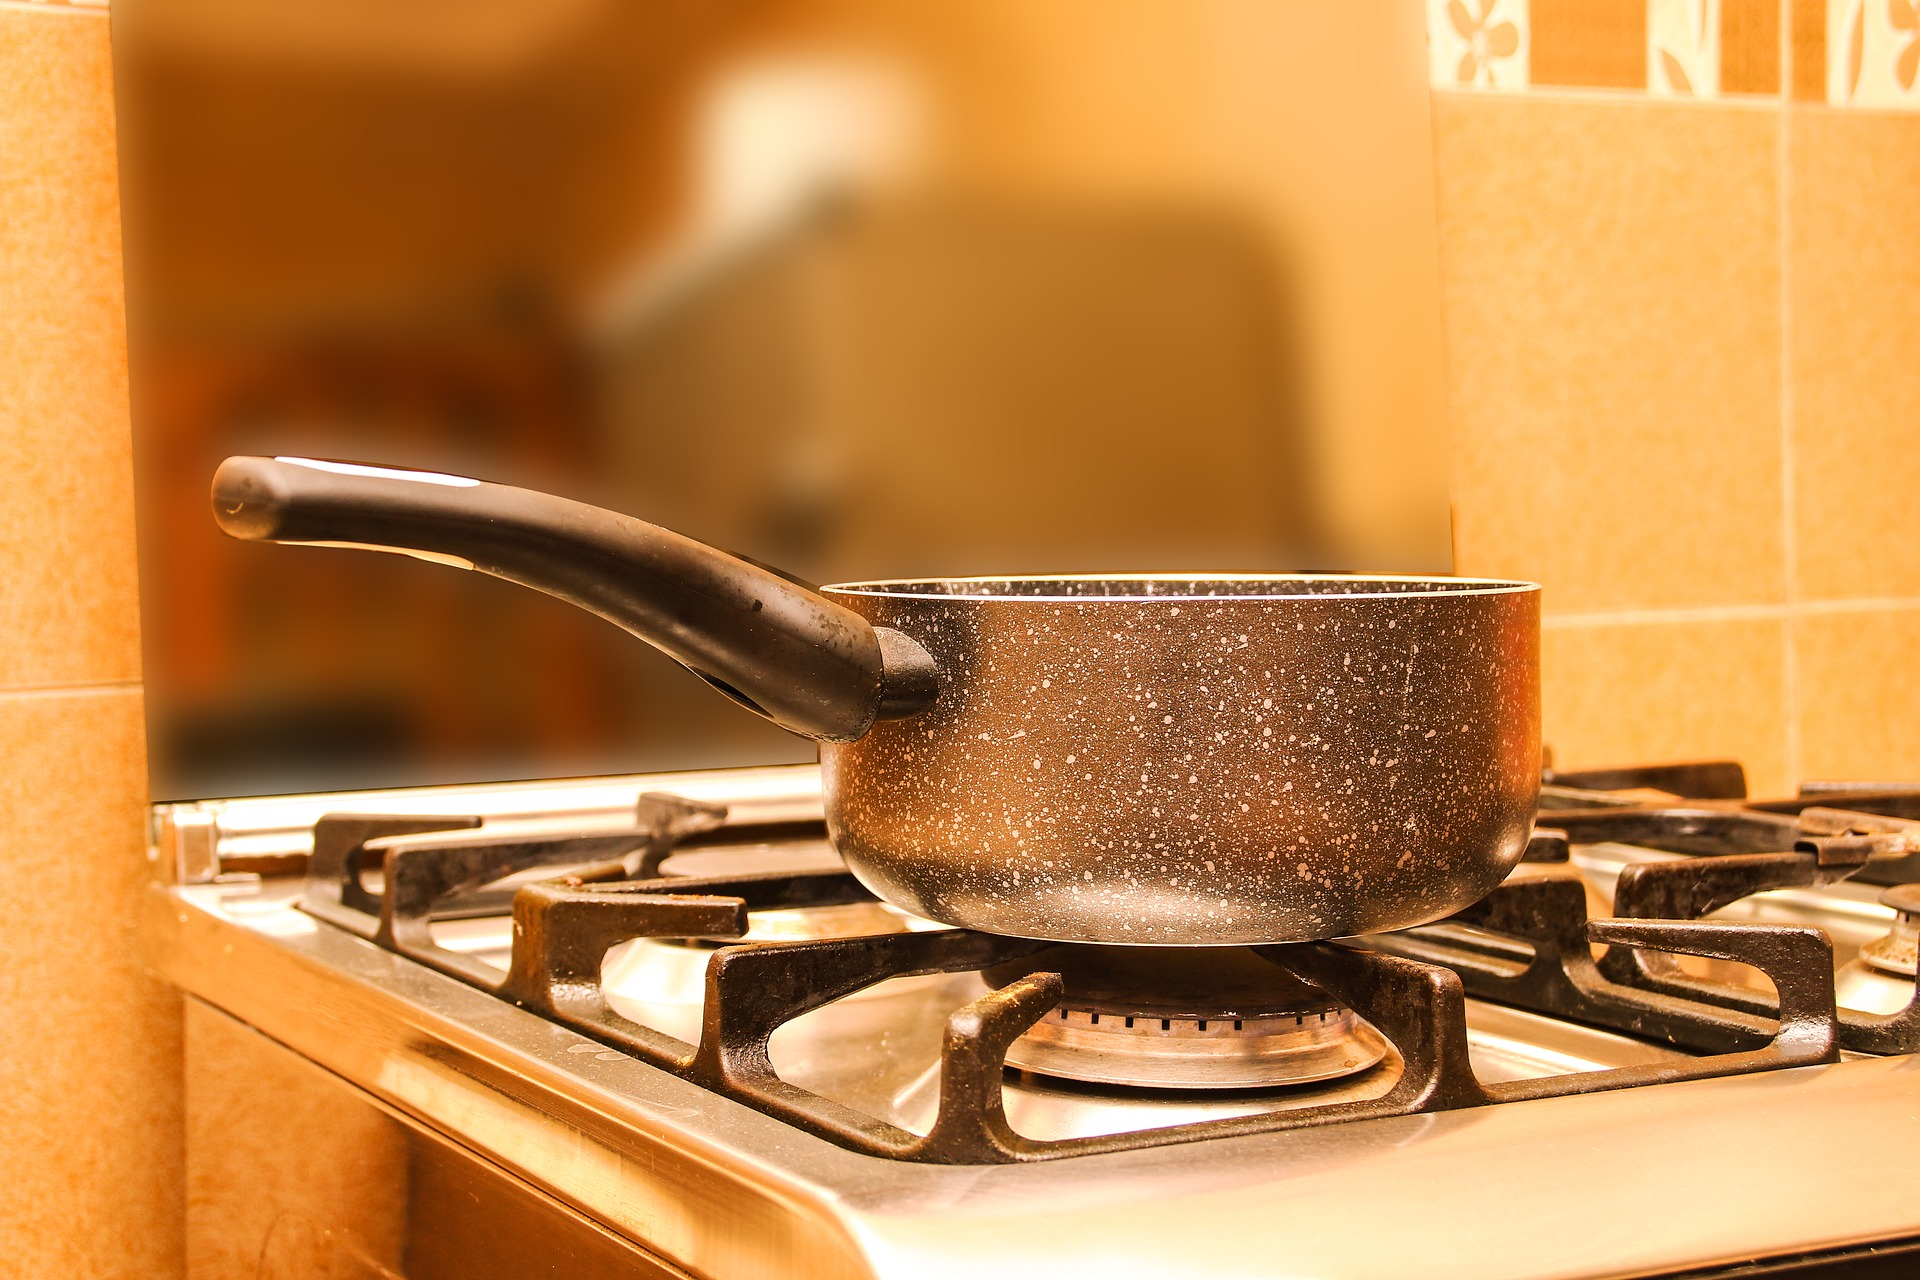 Boiling Water on Stove